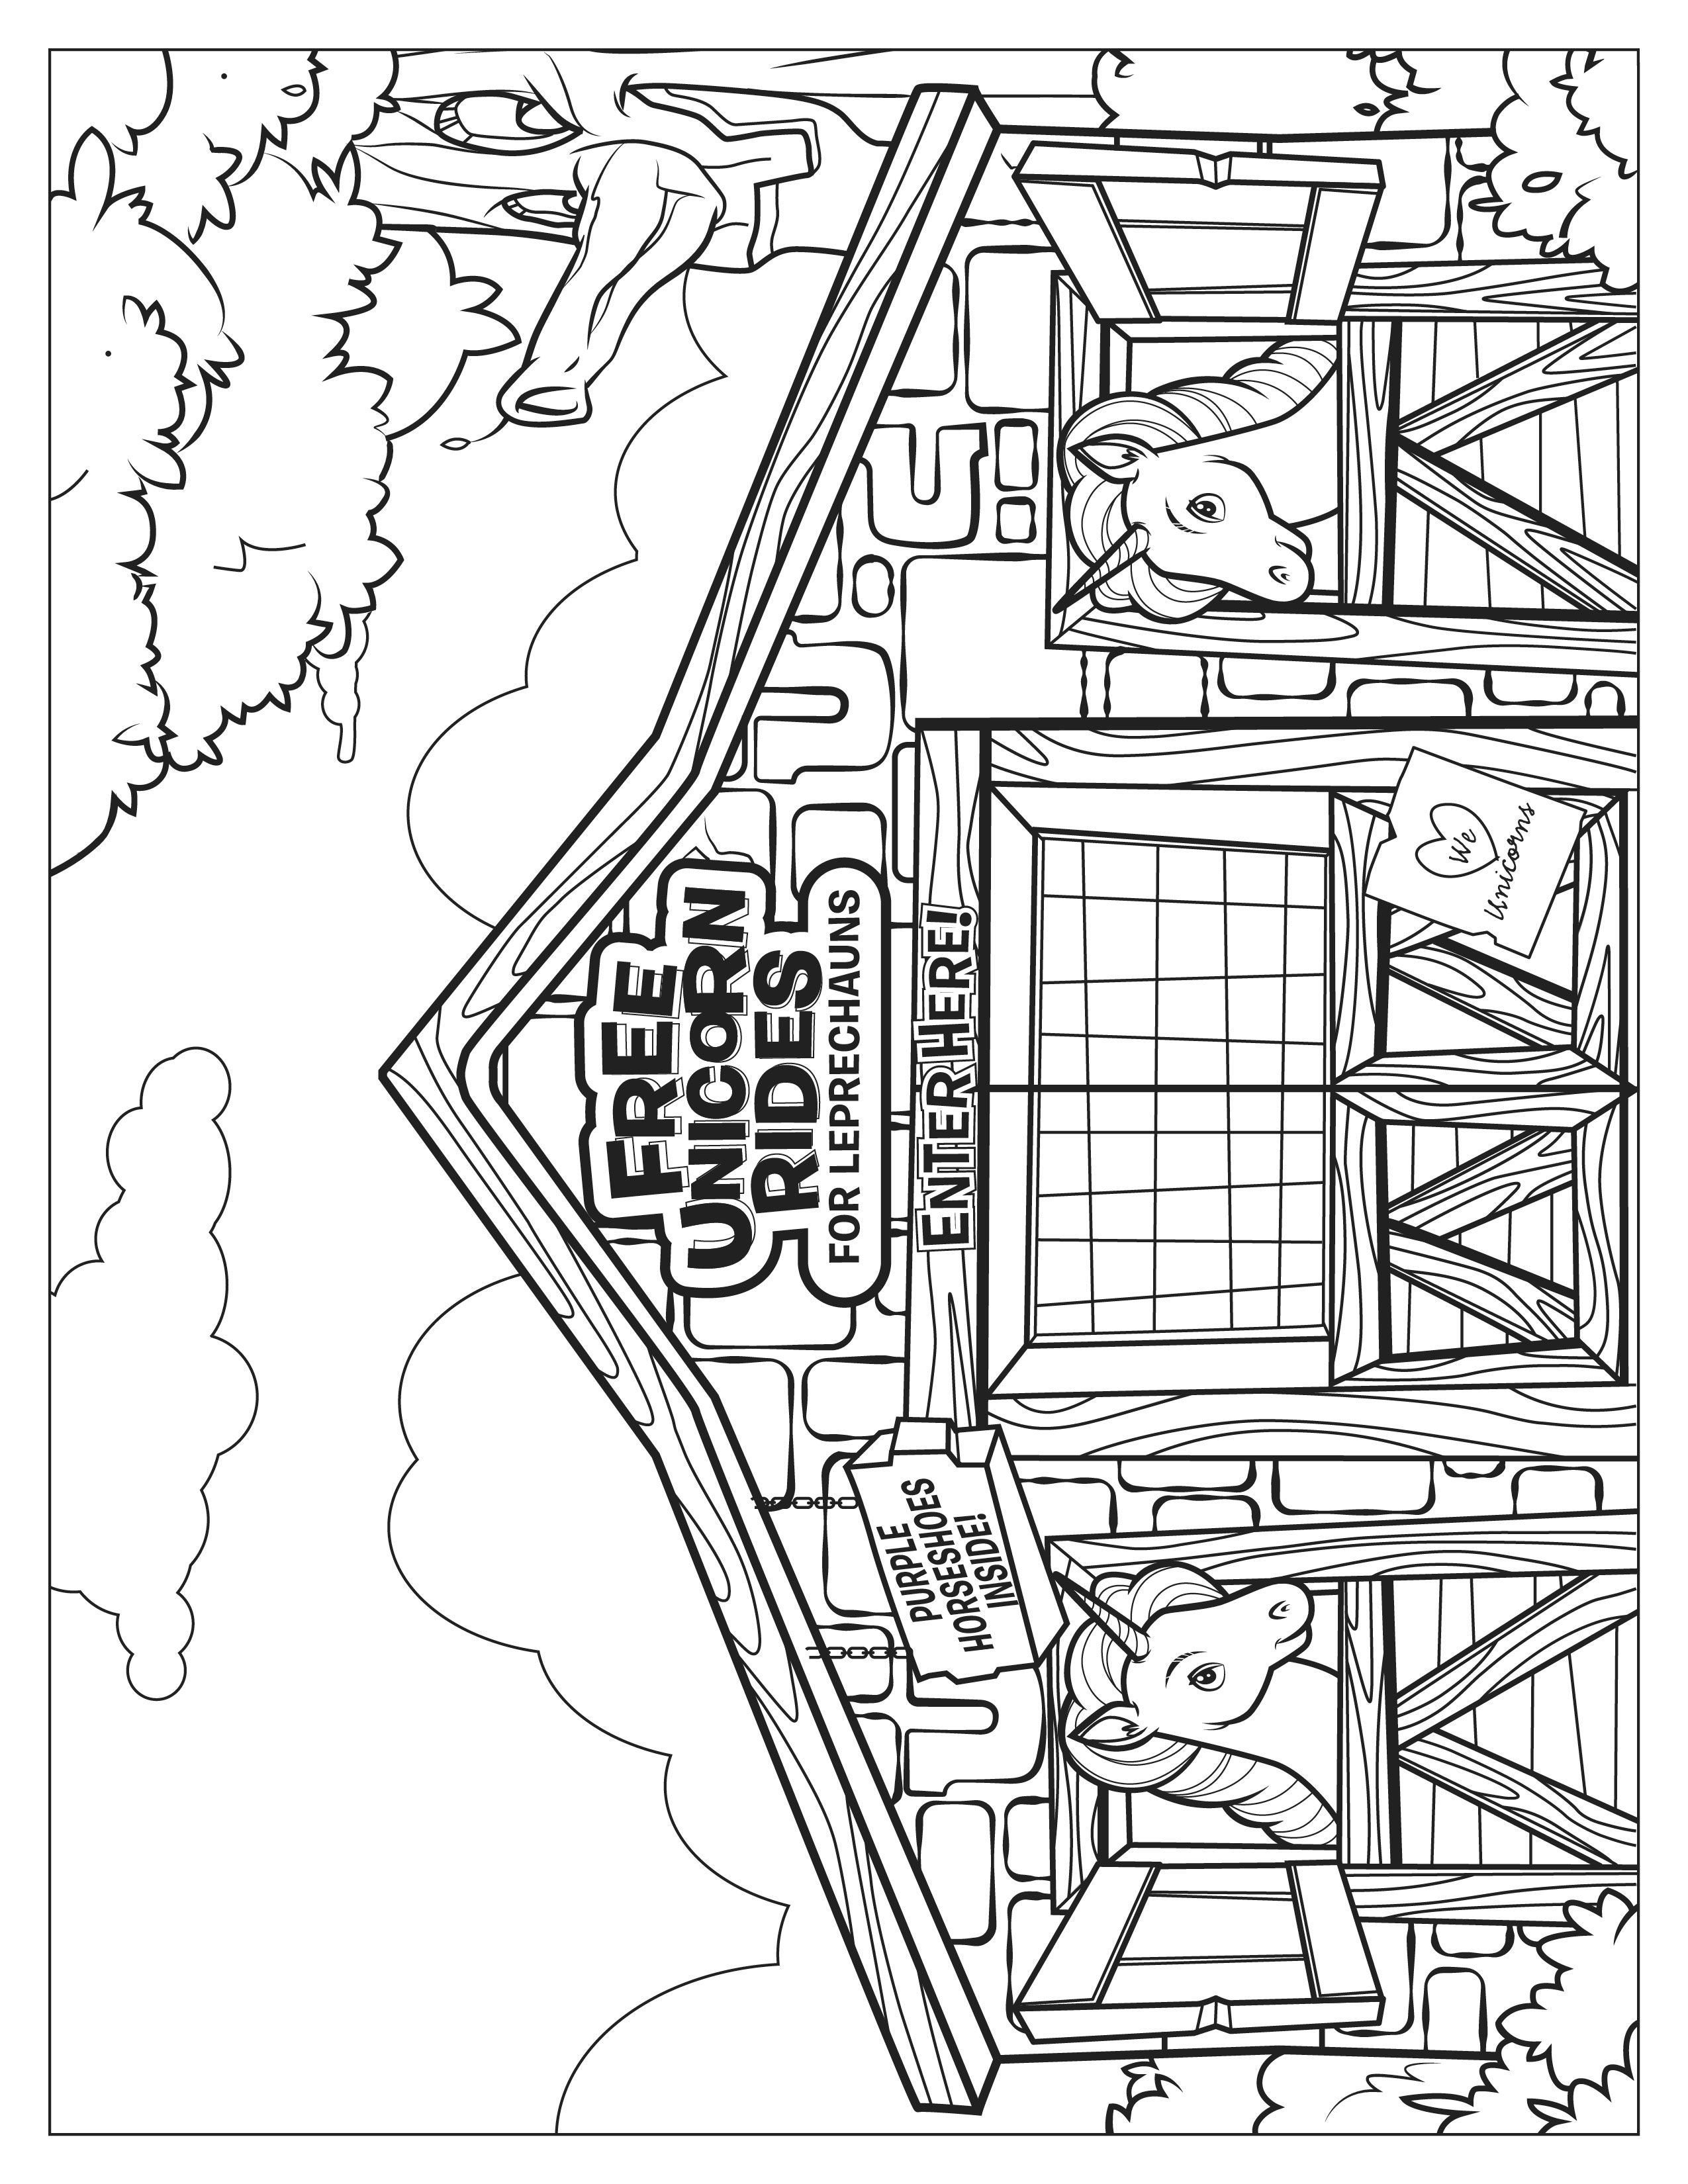 Lucky Charms Unicorn Stable Coloring Page Heart For Kids Lucky Charms Leprechaun Lucky Charm